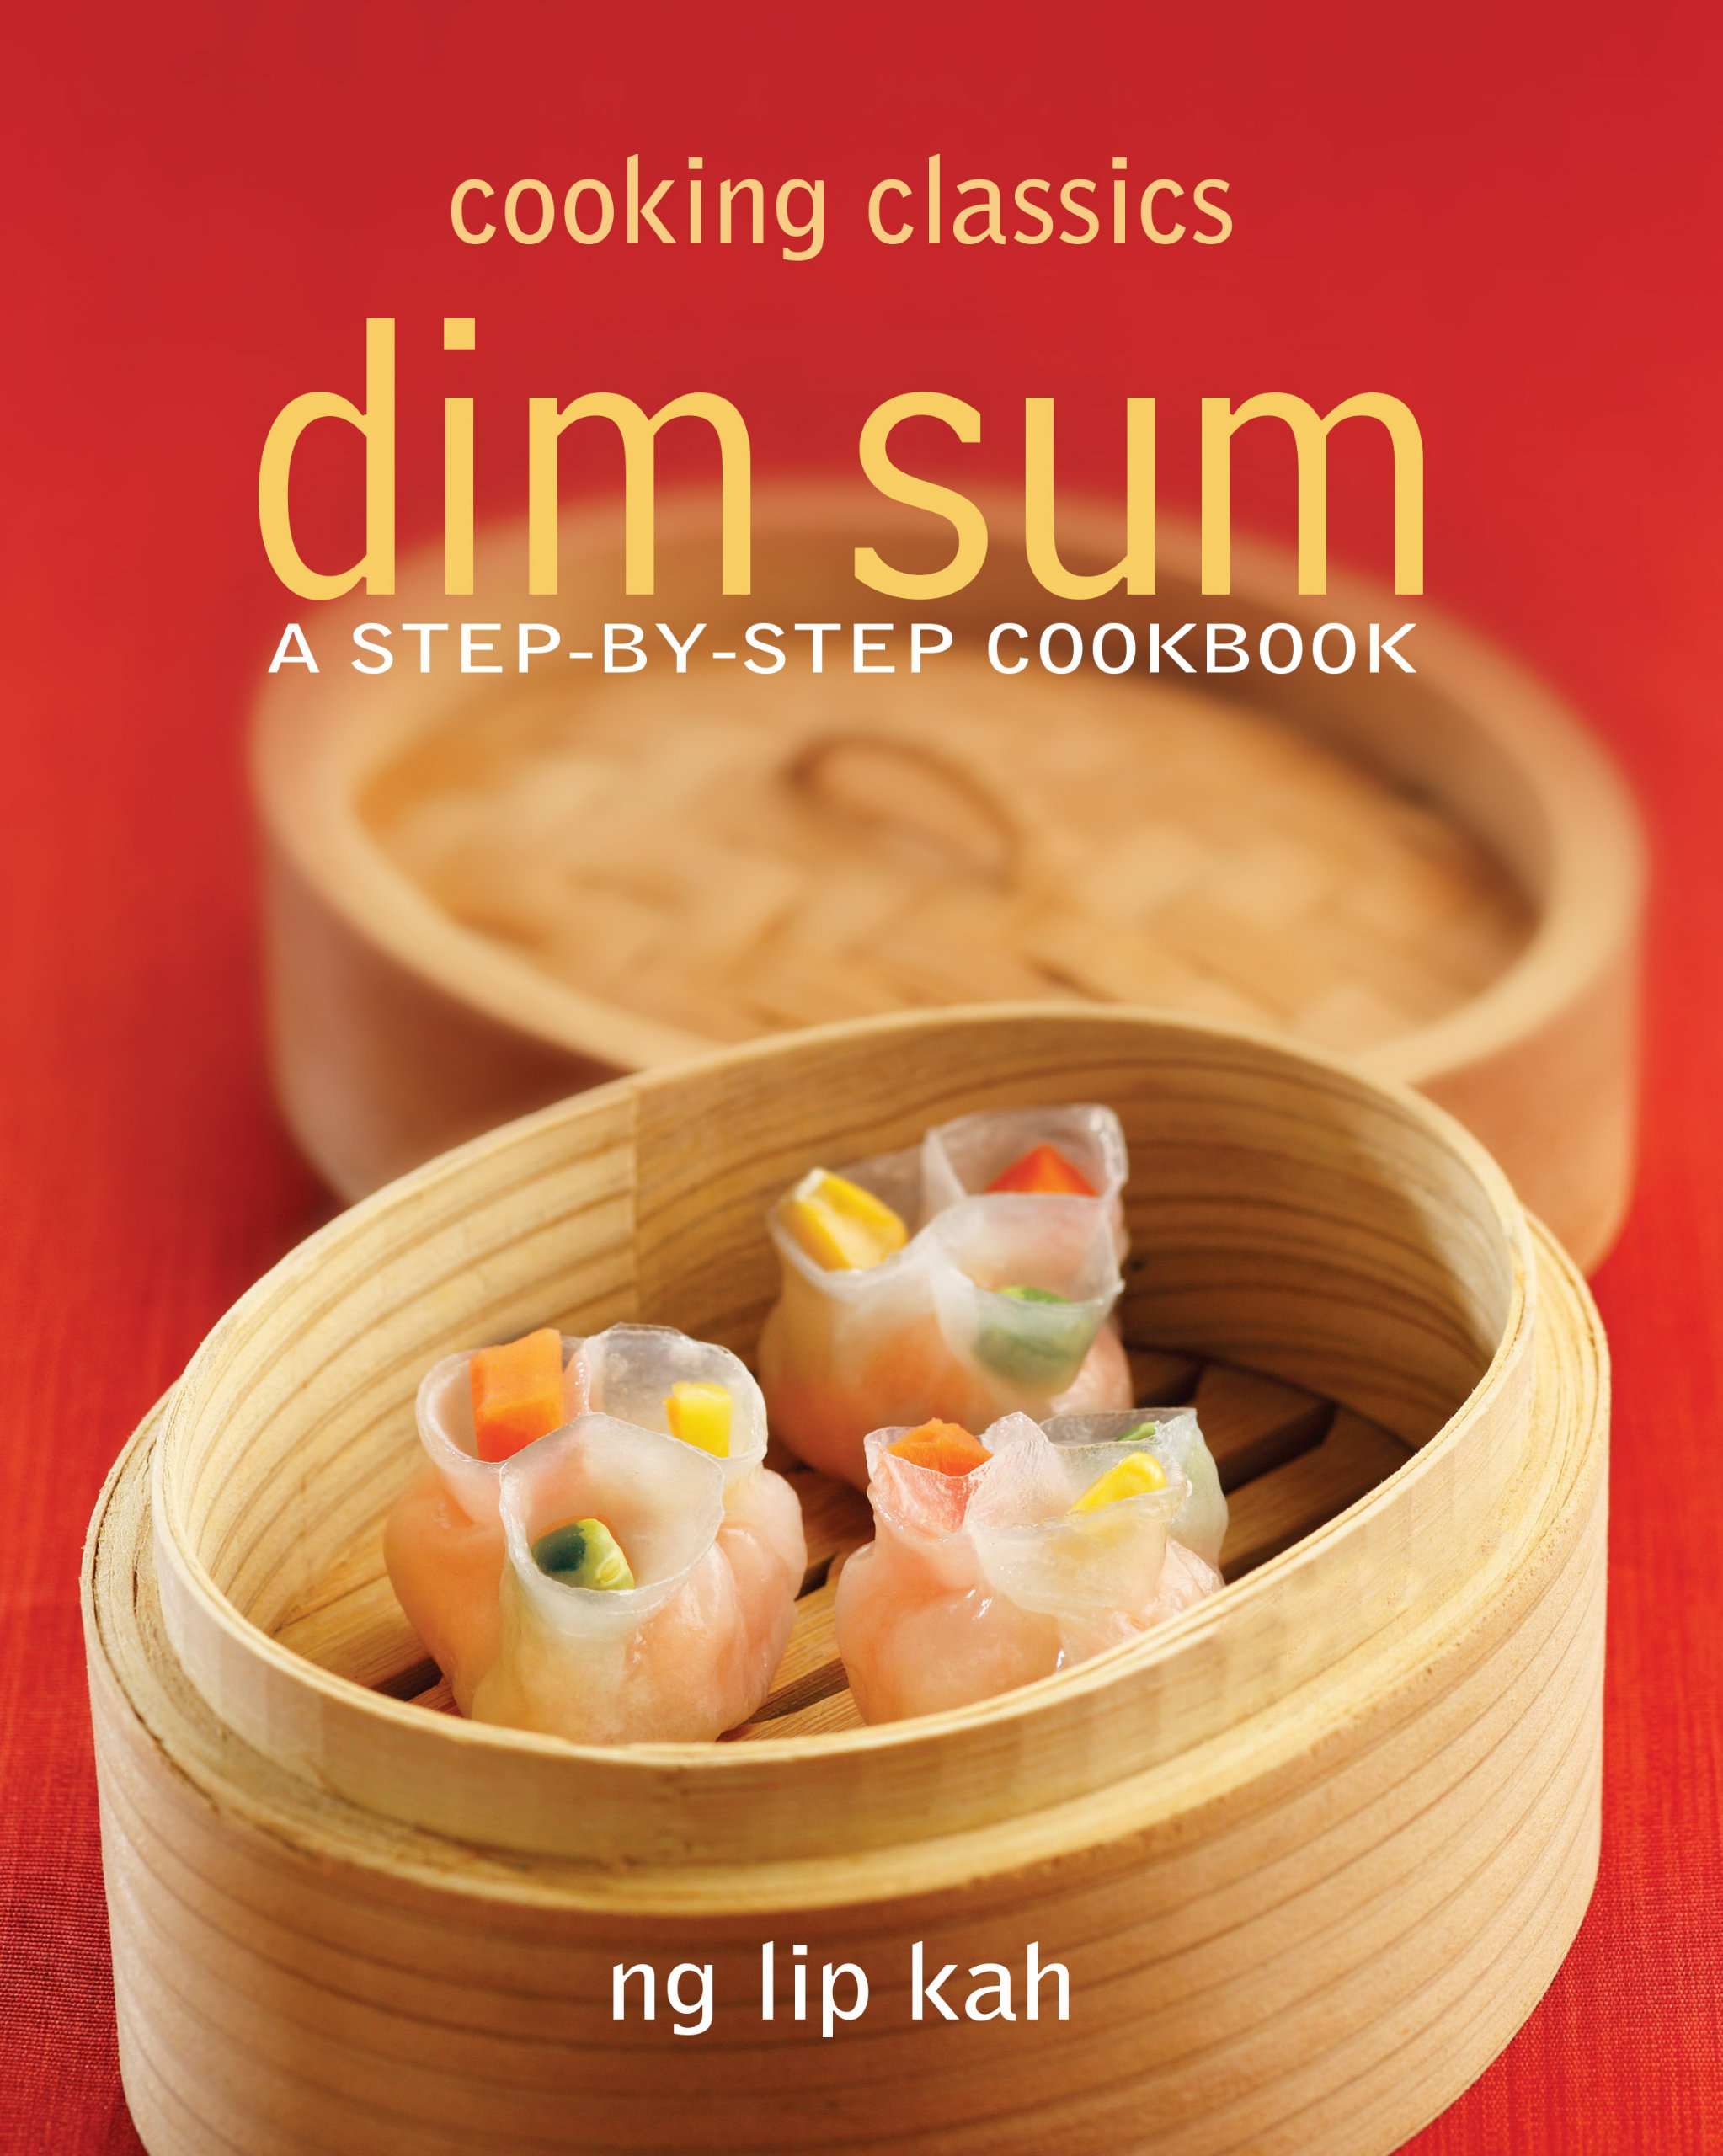 Cooking classics dim sum a step by step cookbook ng lip kah cooking classics dim sum a step by step cookbook ng lip kah 9789814516297 books amazon forumfinder Choice Image